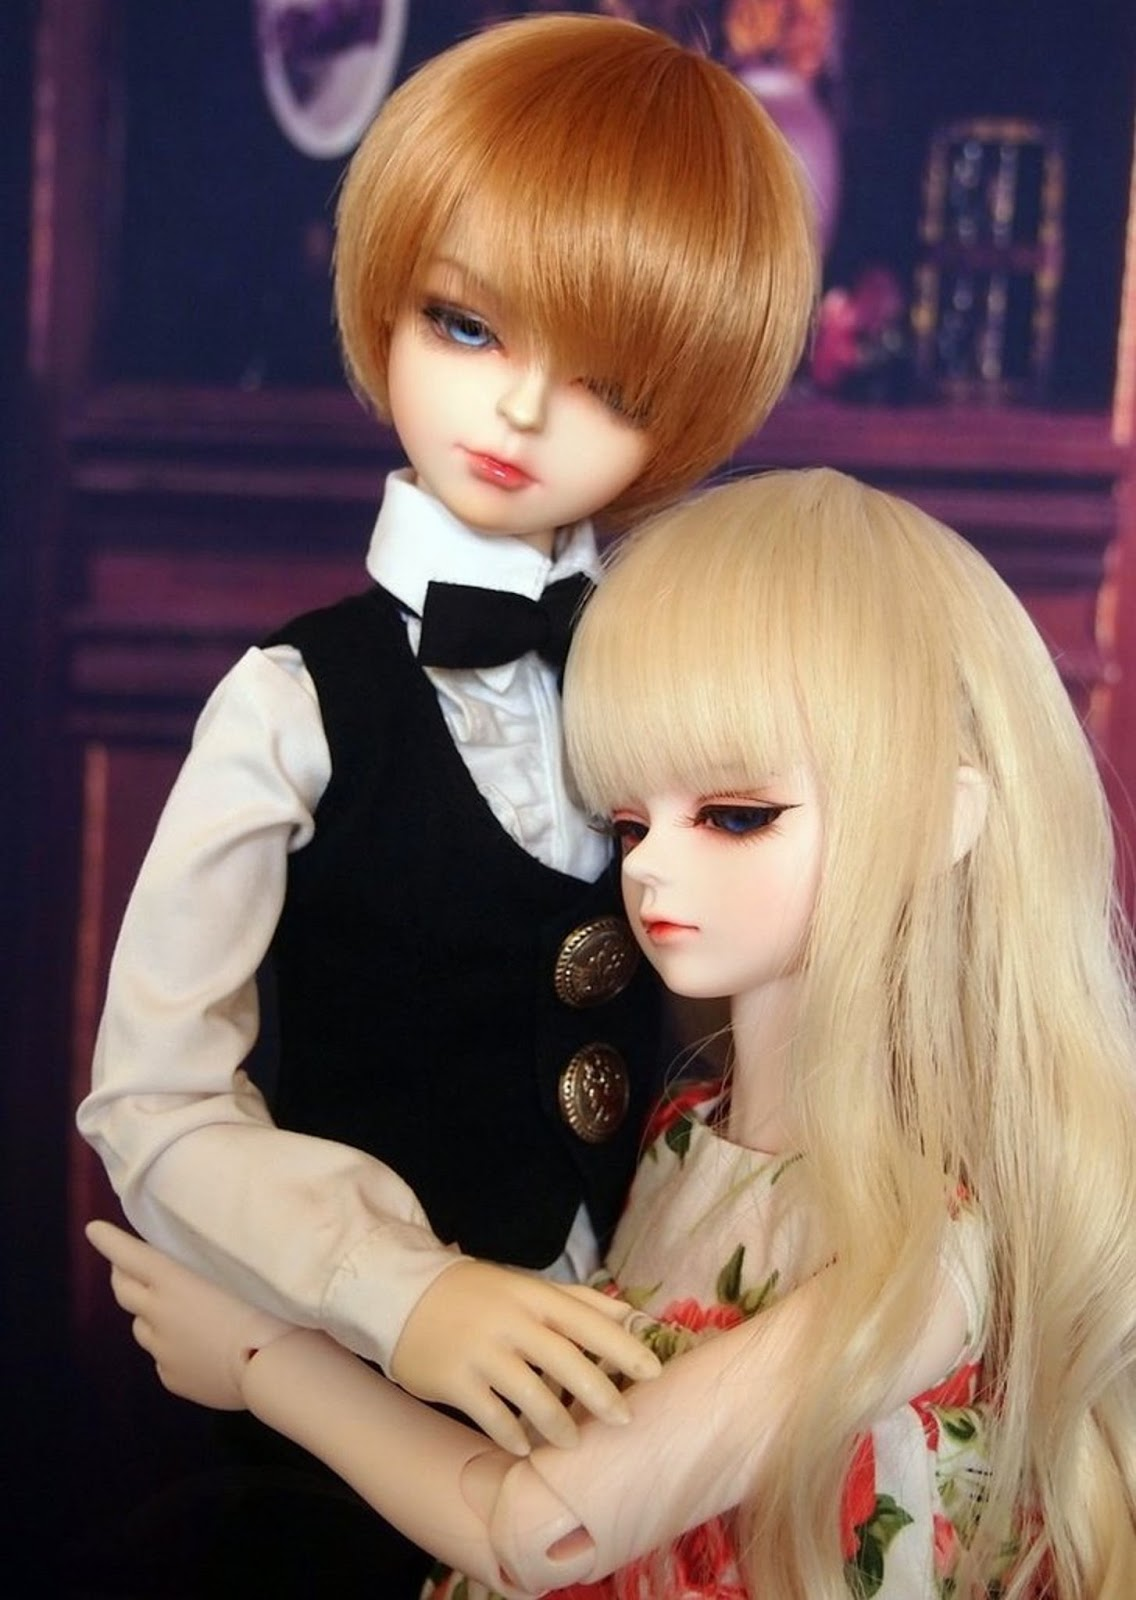 Cute Couple Doll Hd Wallpaper Beautiful Barbie Doll Couple Image Download Free All Hd